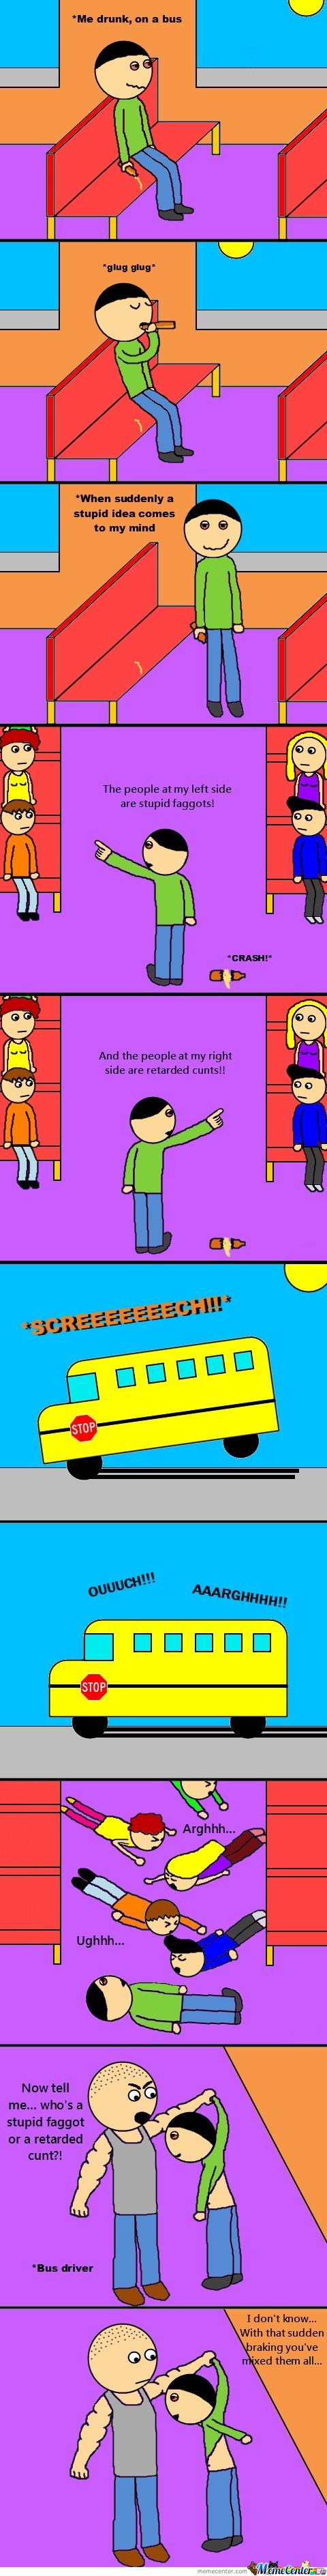 Drunk On A Bus